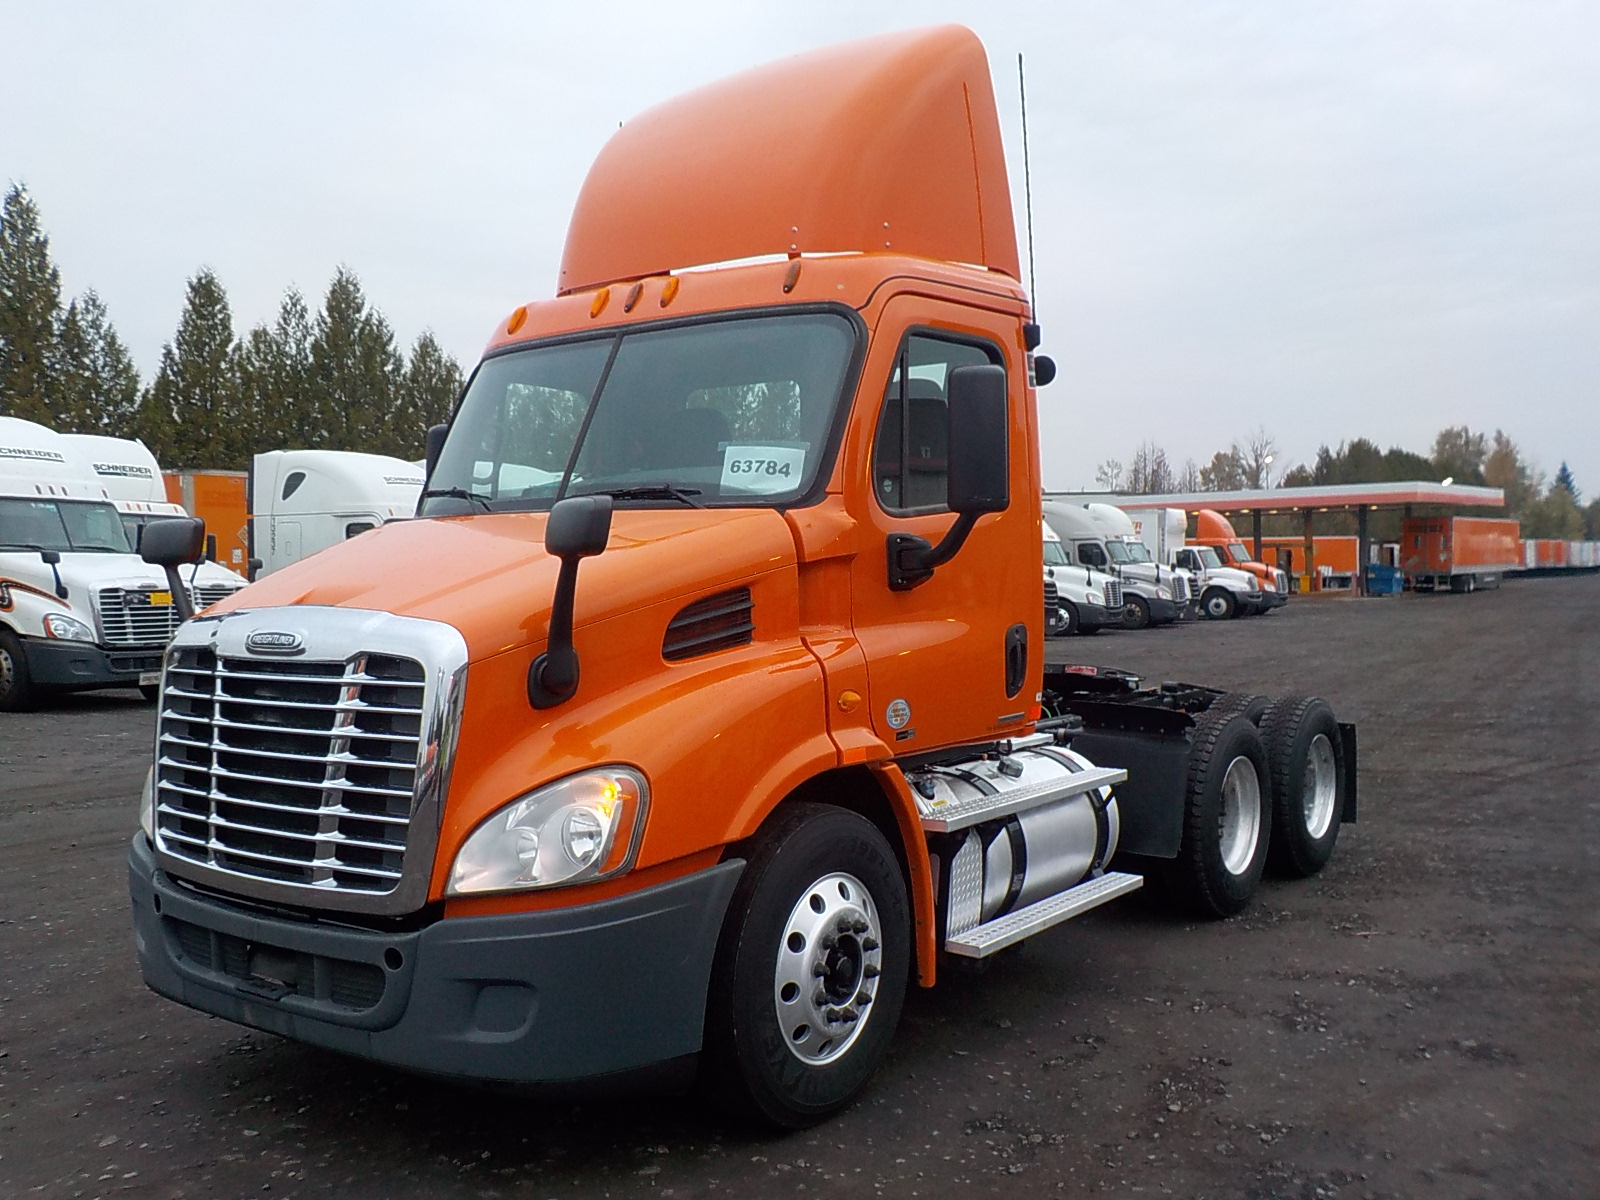 USED 2012 FREIGHTLINER CASCADIA DAYCAB TRUCK #84063